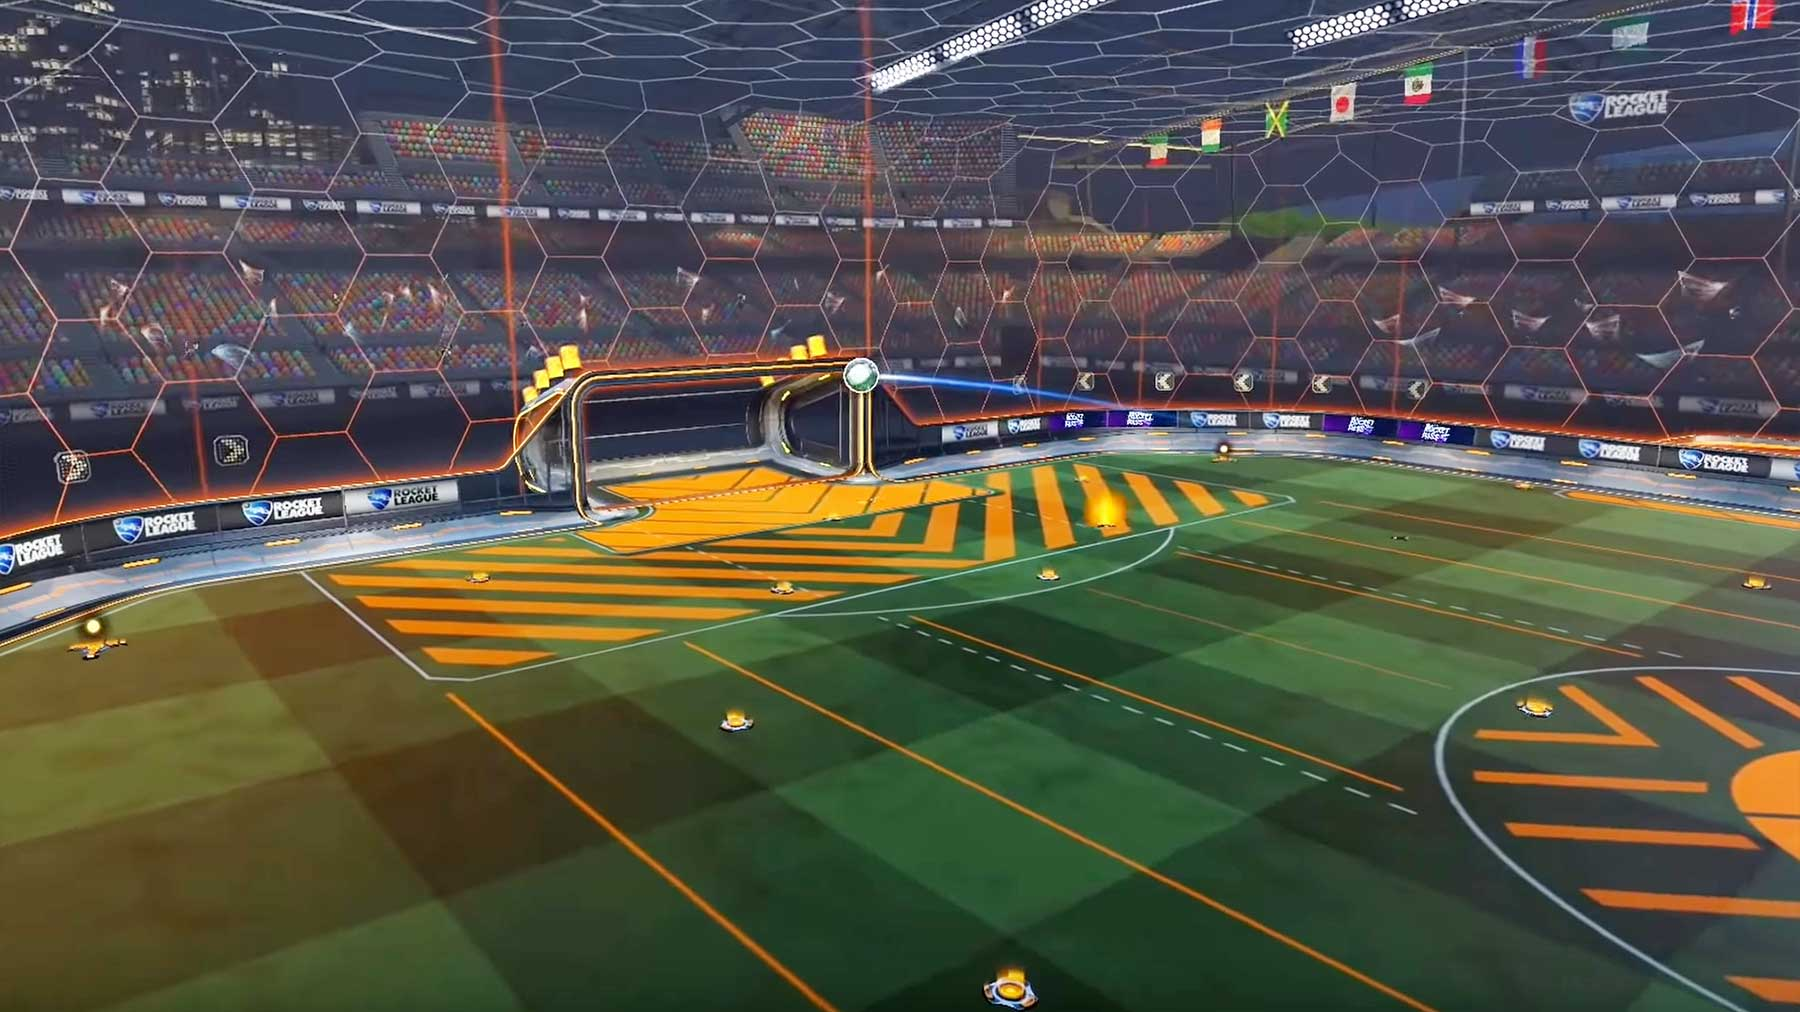 """Rocket League"" mit unsichtbaren Autos spielen rocket-league-ohne-autos"